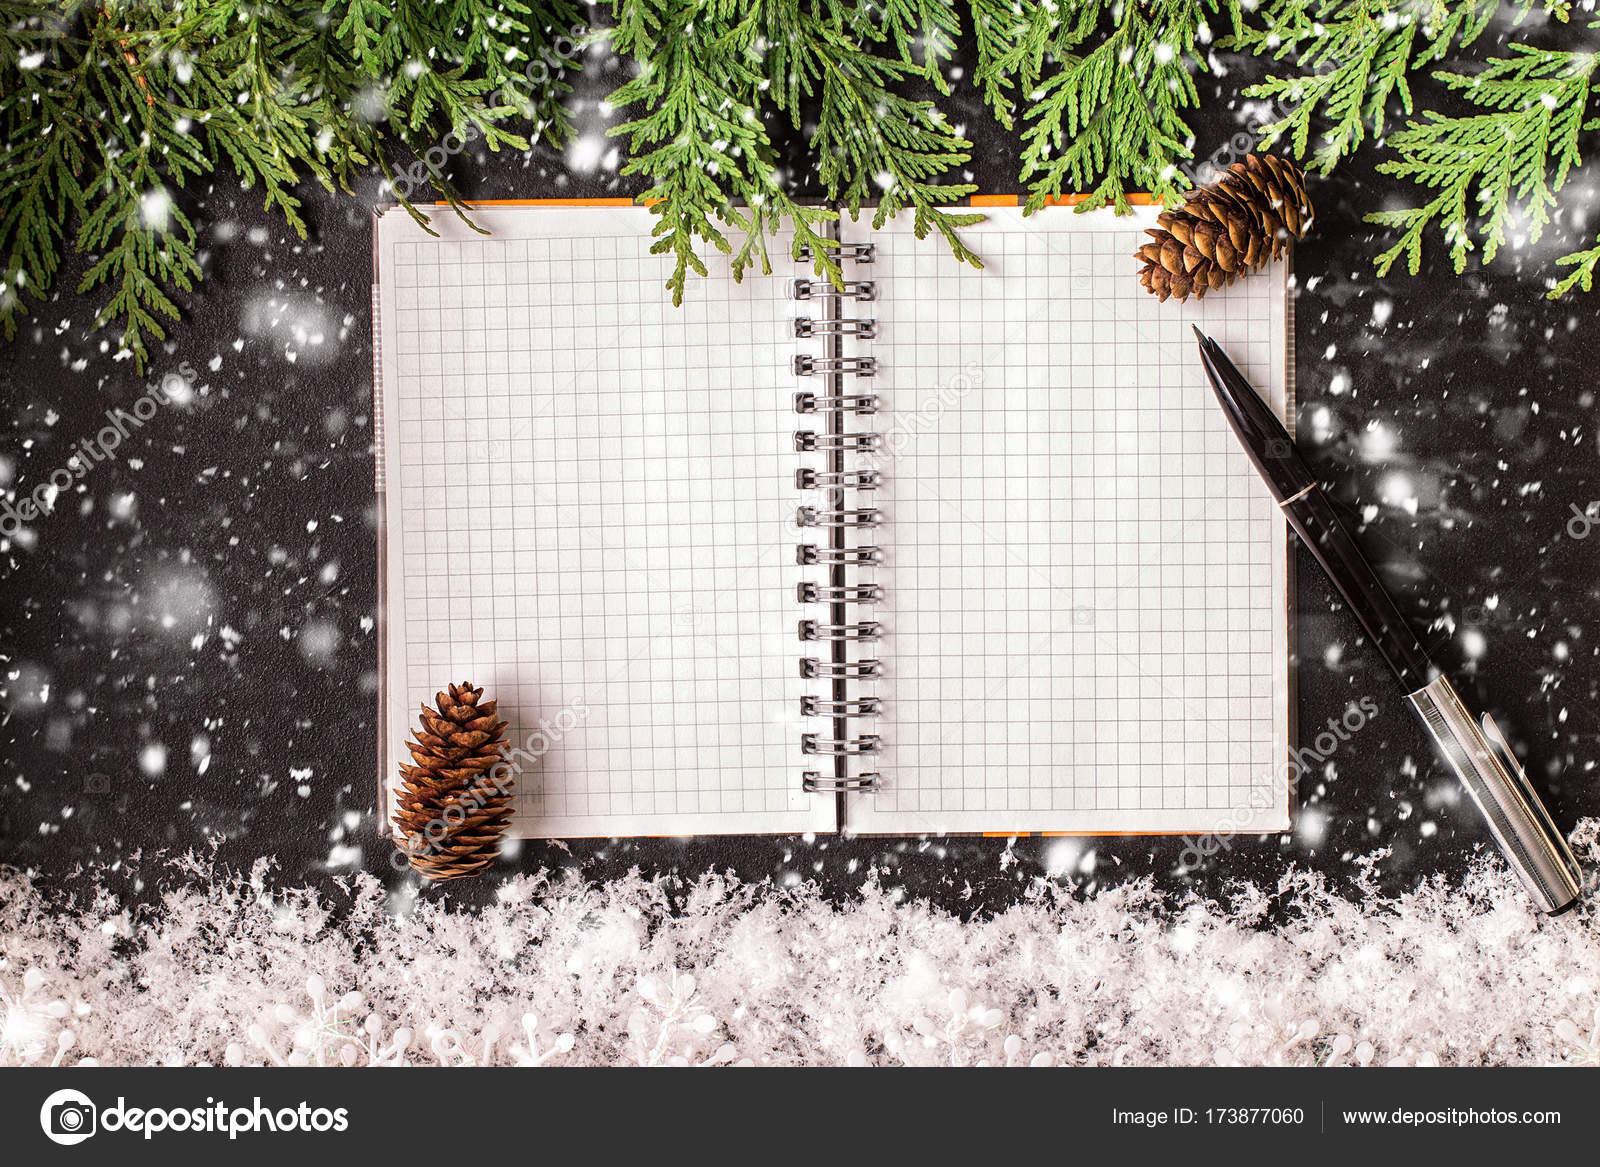 Christmas ornaments and an open blank notebook on a chalkboard– stock image